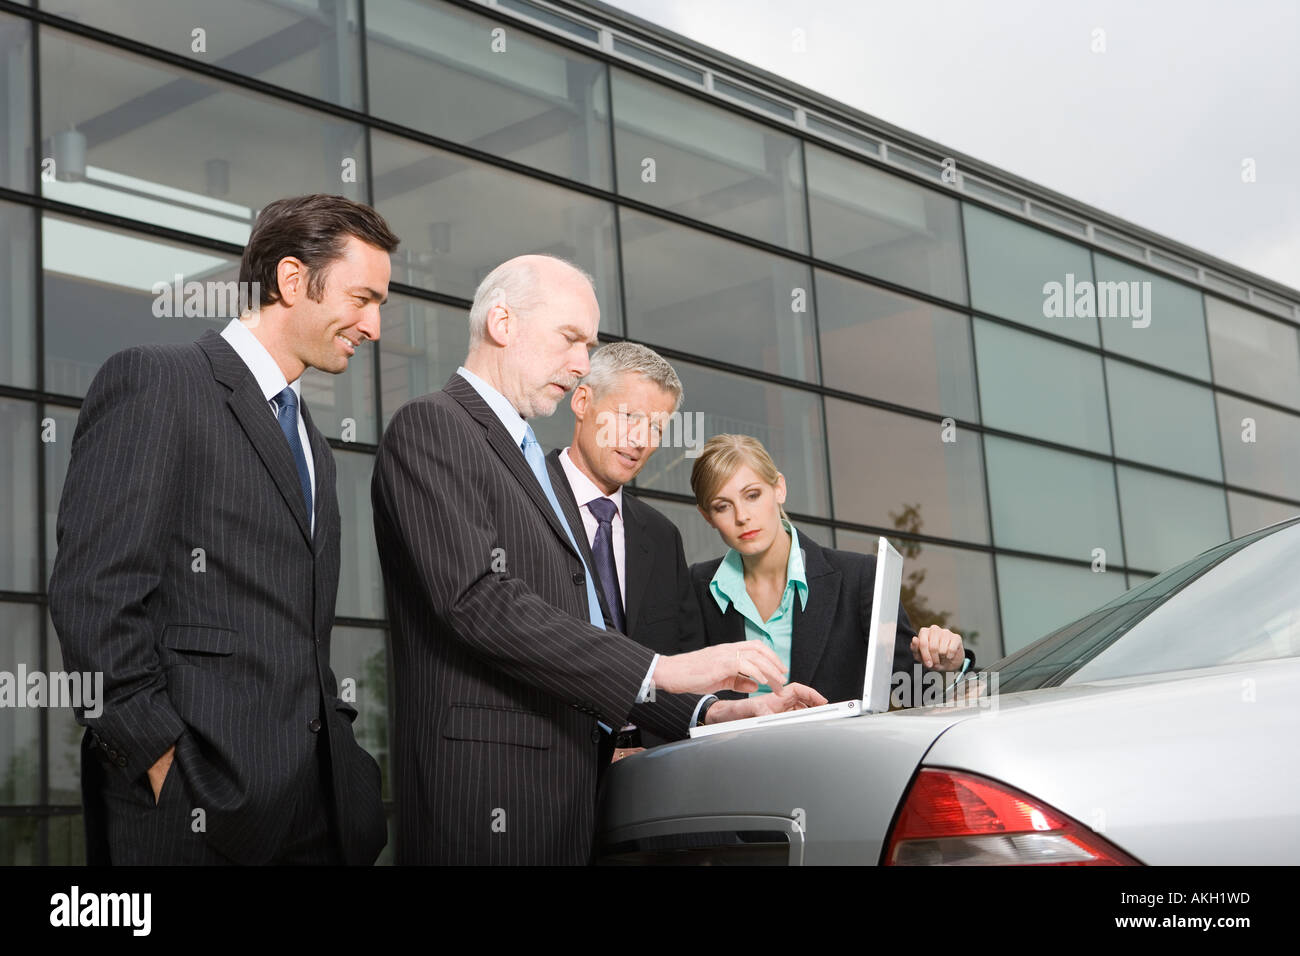 Businesspeople looking at laptop on automobile boot - Stock Image